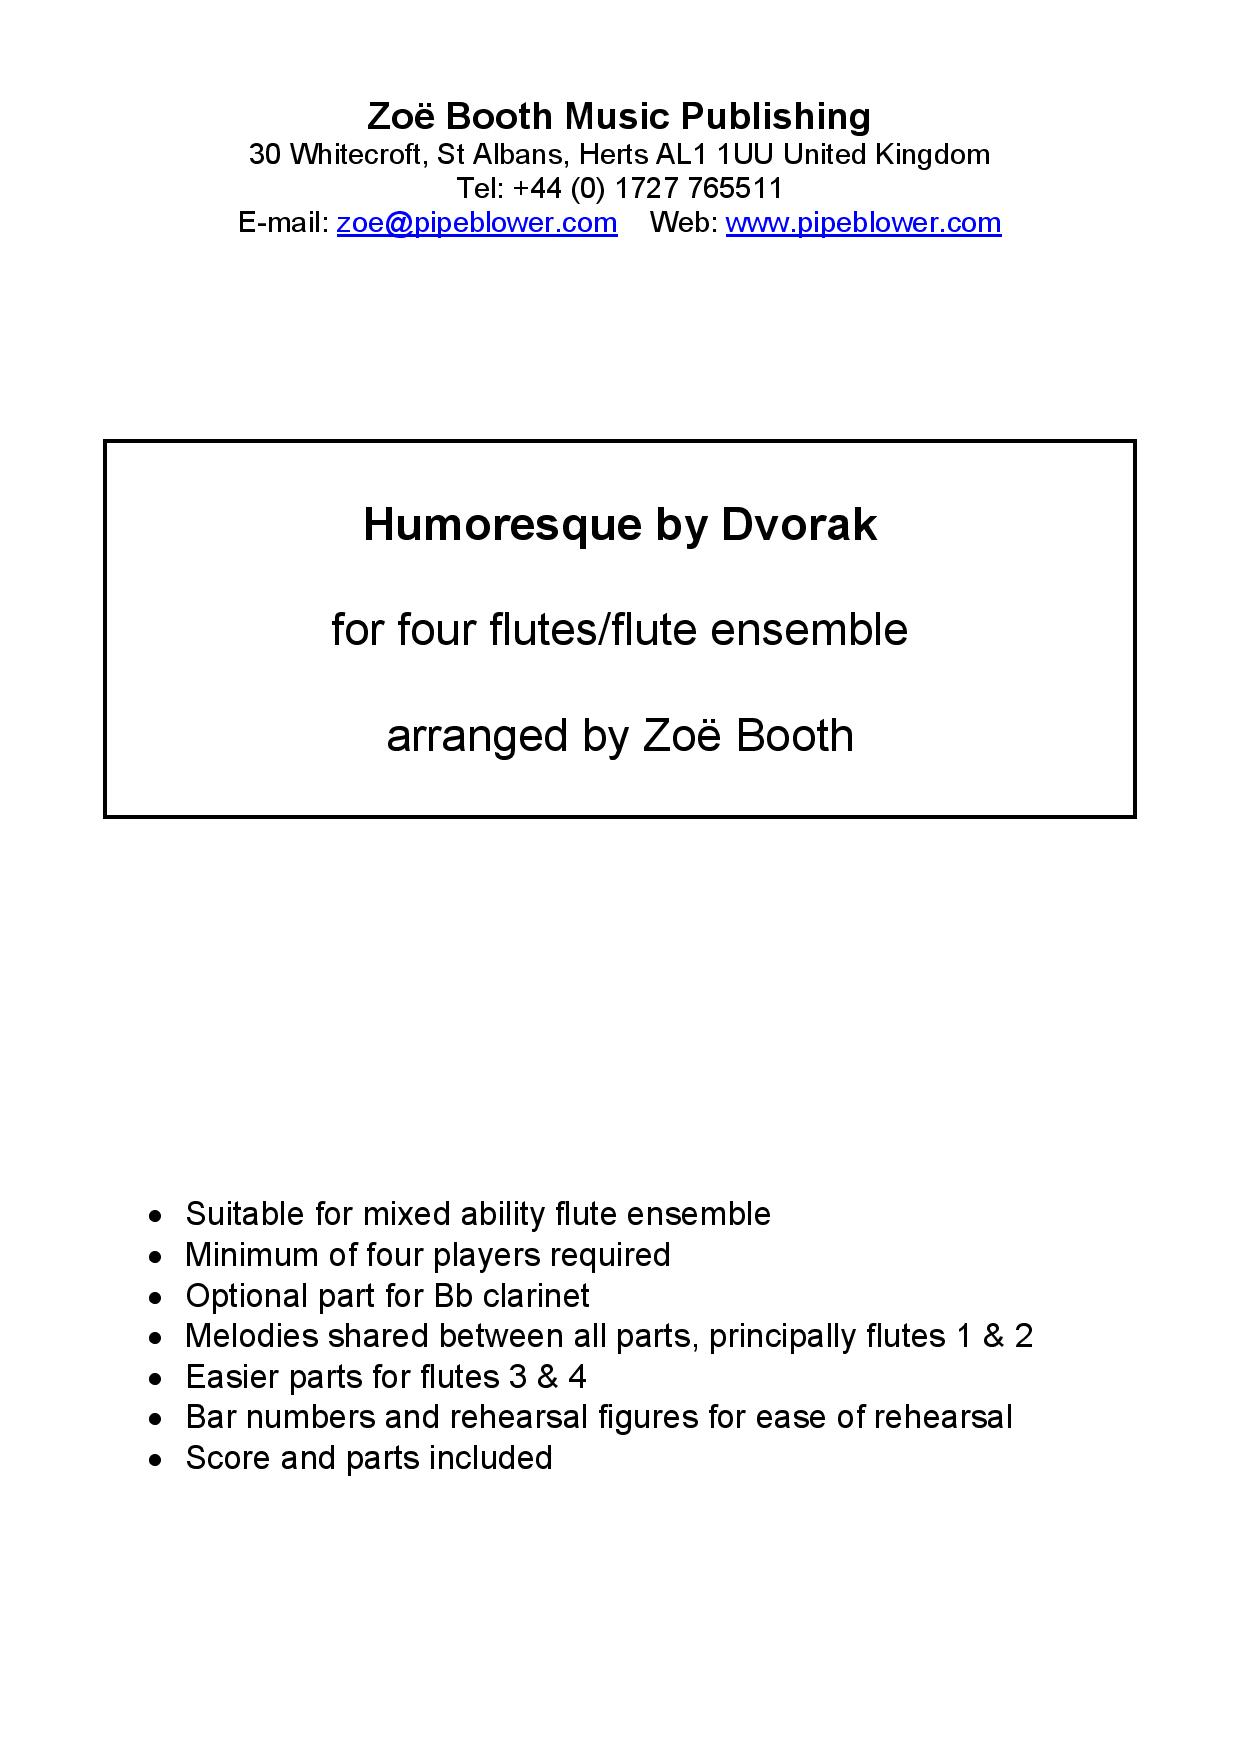 Humoresque by Dvorak,  arranged by Zoë Booth for four or more flutes/flute choir